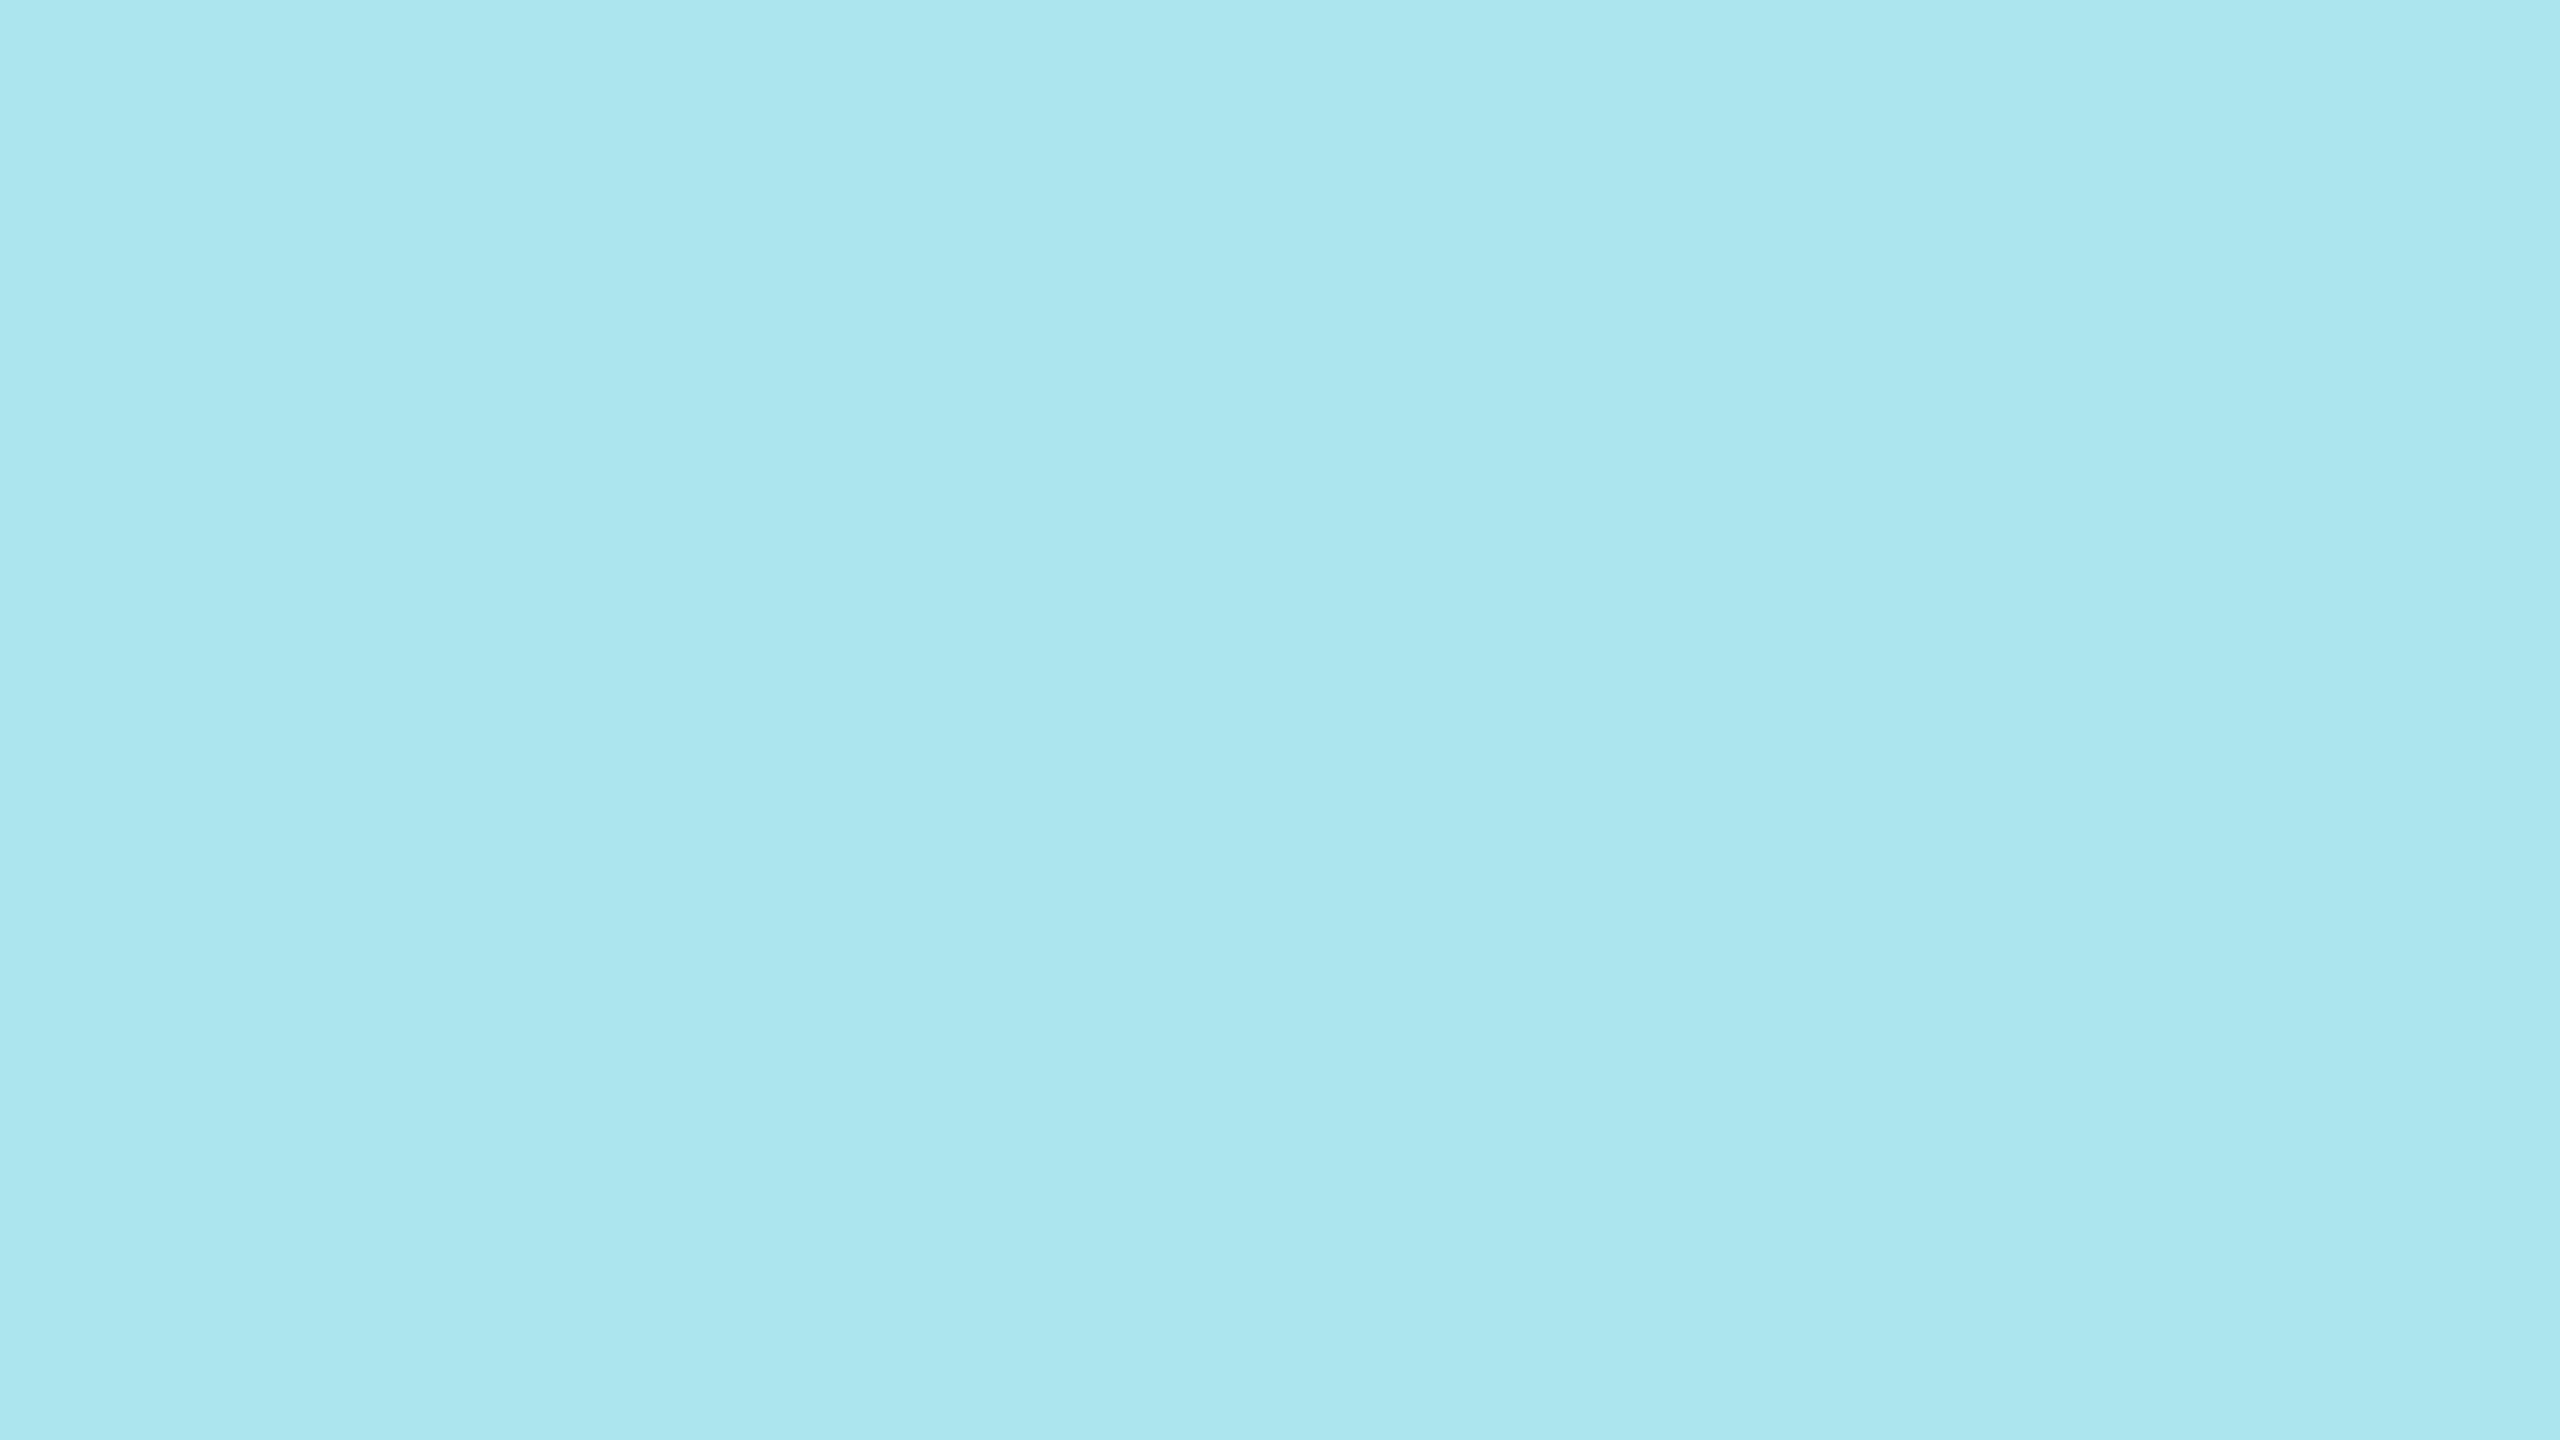 2560x1440 Blizzard Blue Solid Color Background